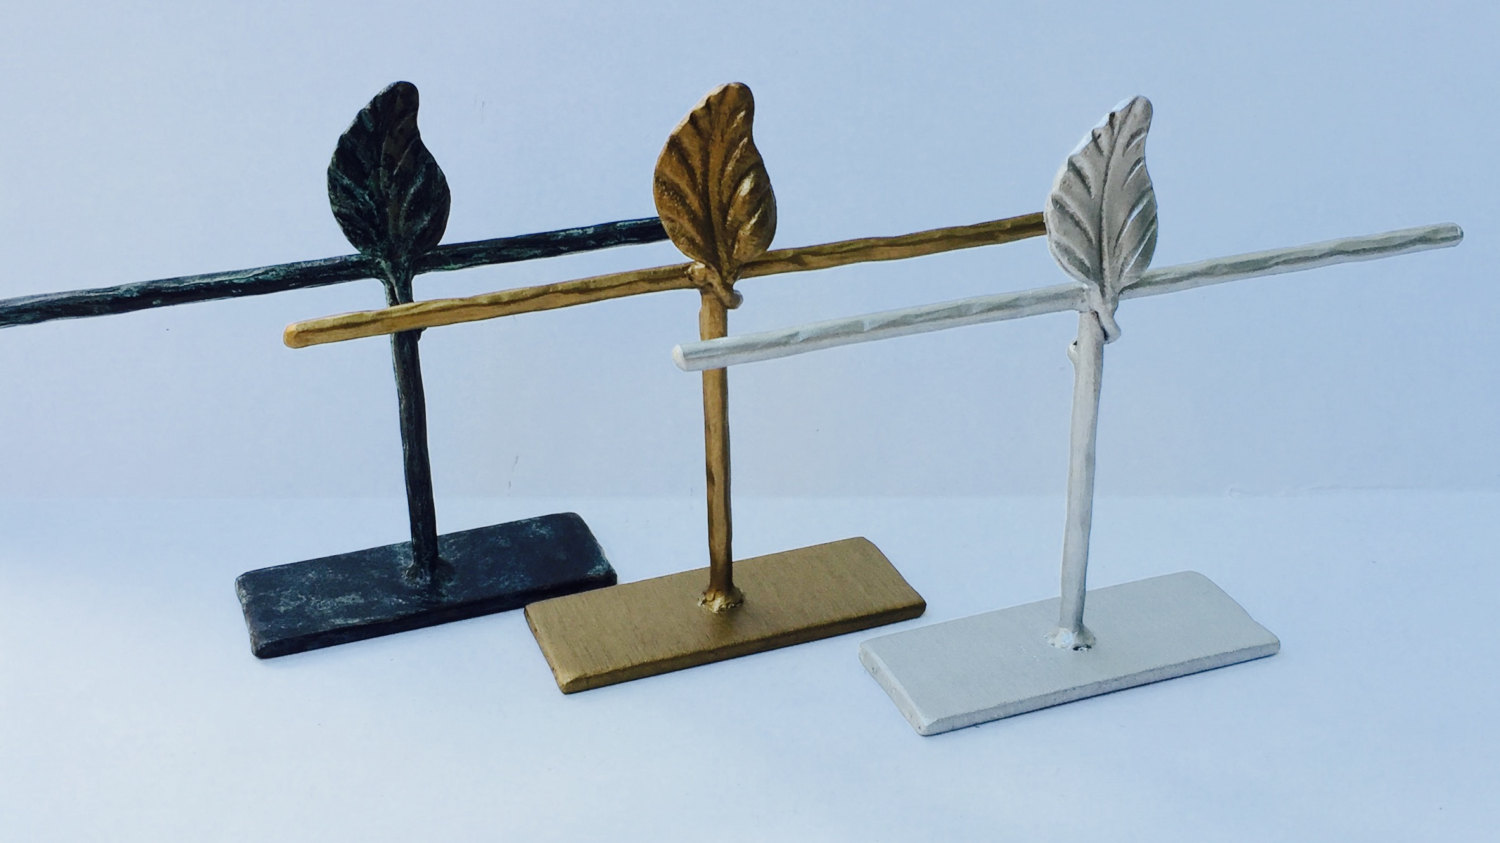 This beautifully textured steel, is perfect as a jewelry bracelet holder, having a place for multiple pieces.